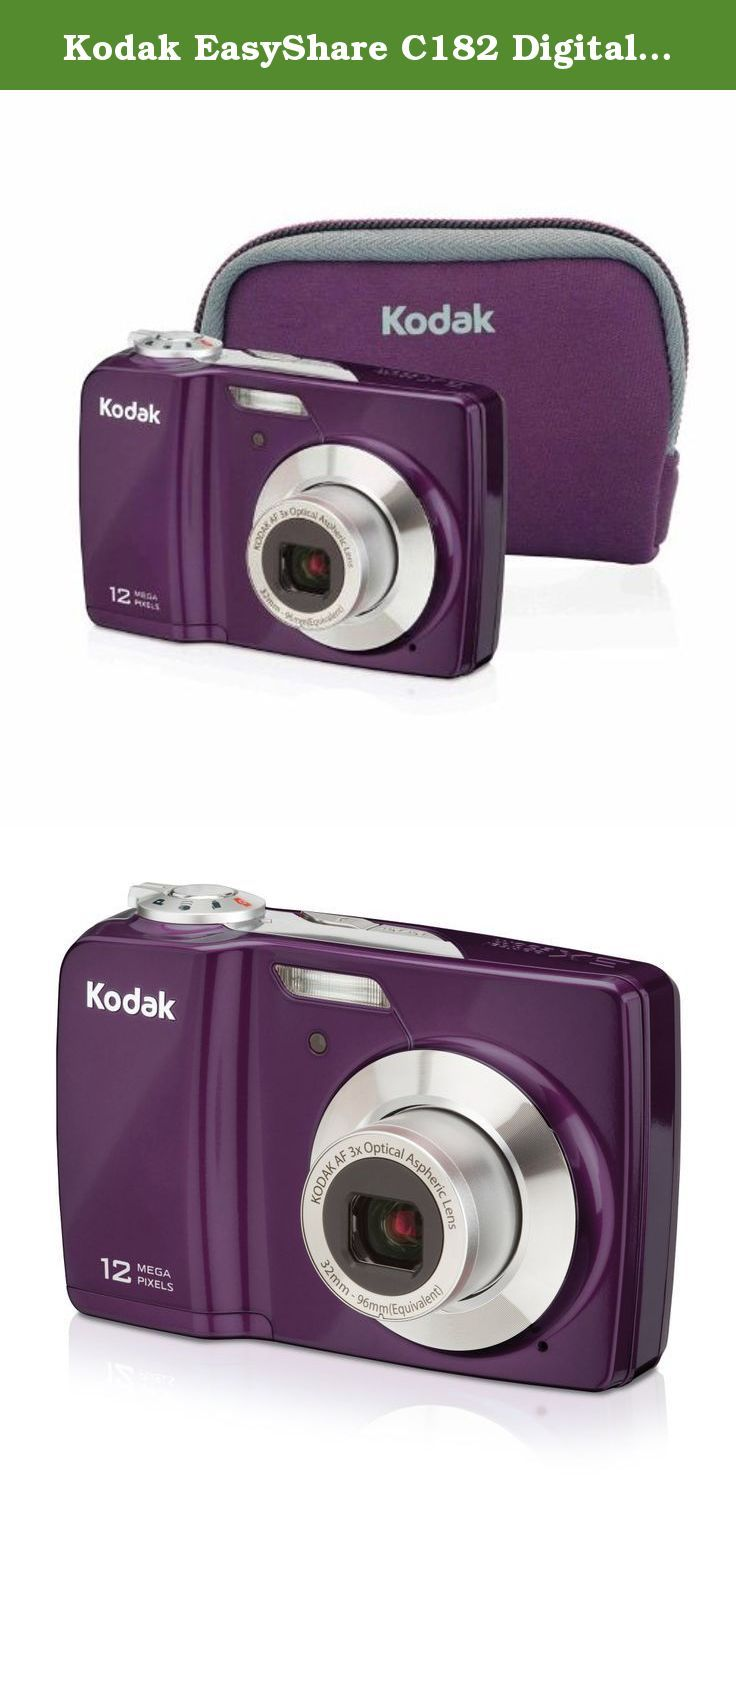 "Kodak EasyShare C182 Digital Camera Bundle(Purple). Share your world big and bright with the KODAK EASYSHARE C182 Plum Digital Camera Bundle. The camera gives you a gorgeous 3"" display and 12 MP so you can see your life in amazing detail - all at a great price. And with easy-to-use features like Smart Capture, taking extraordinary pictures is as easy as pushing a button.The matching Plum case provides style, value and security for your camera. If you like a good value, you'll love the…"